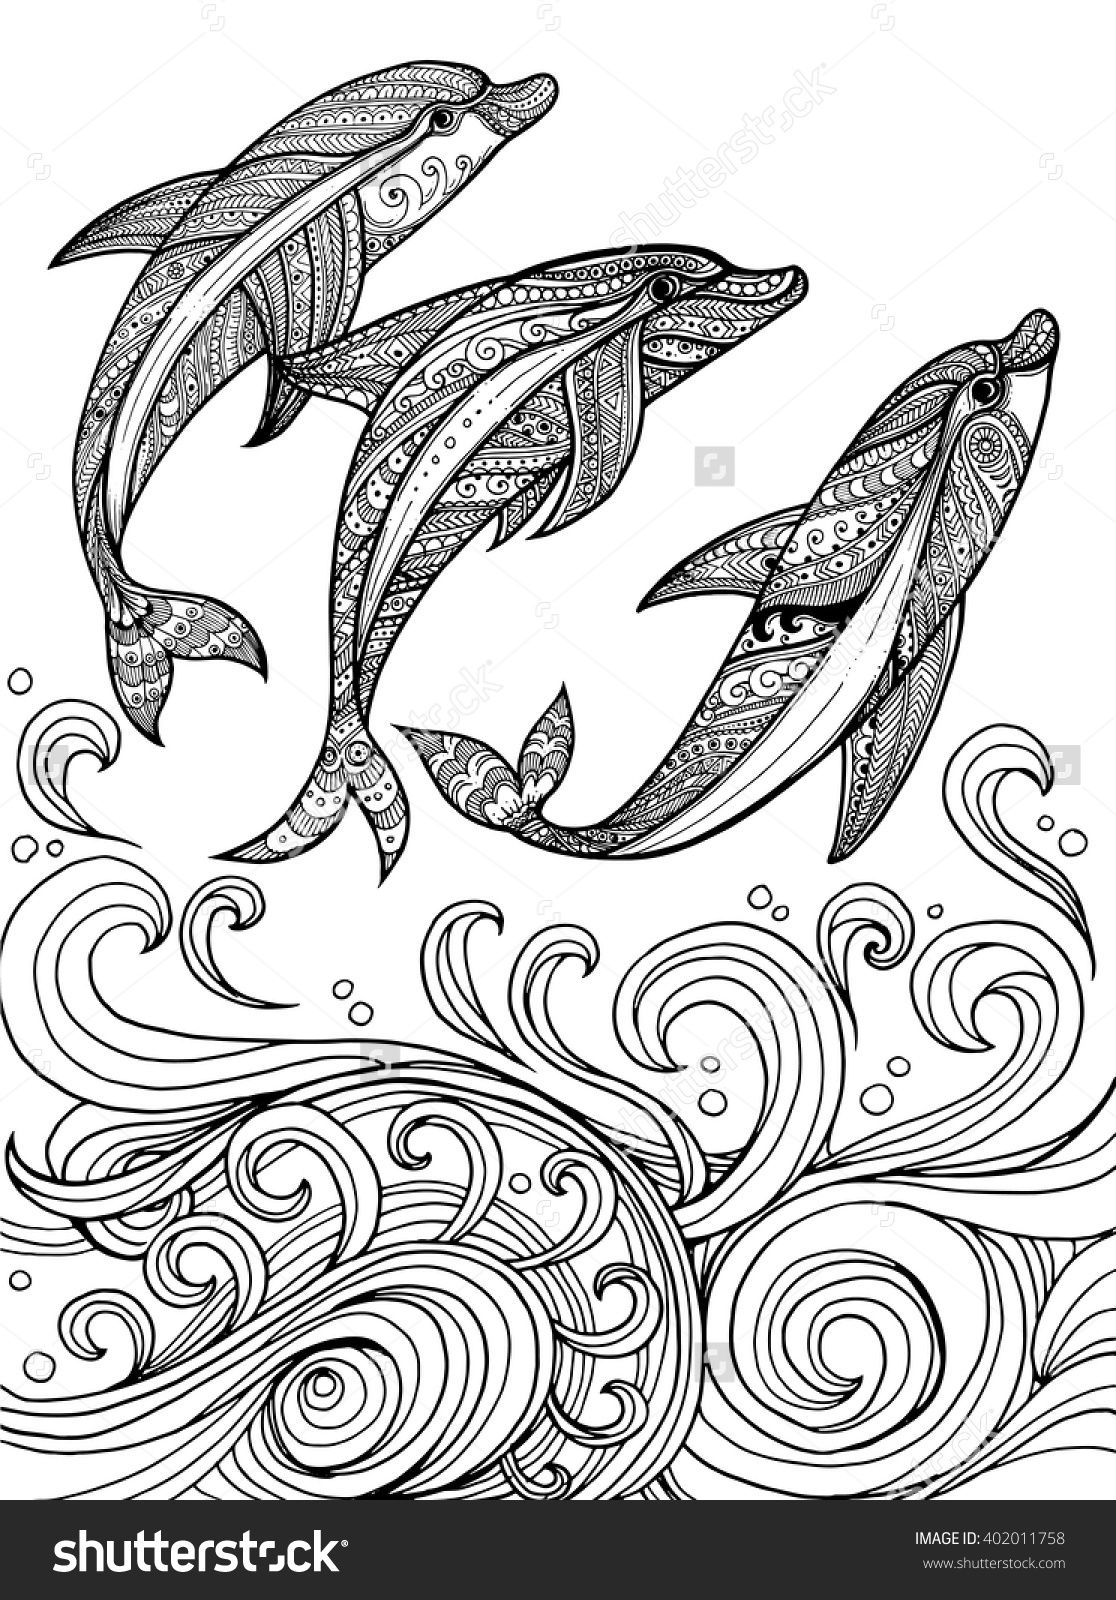 Free coloring pages dolphins - Zentangle Dolphins In Scrolling Sea Wave For Adult Coloring Page